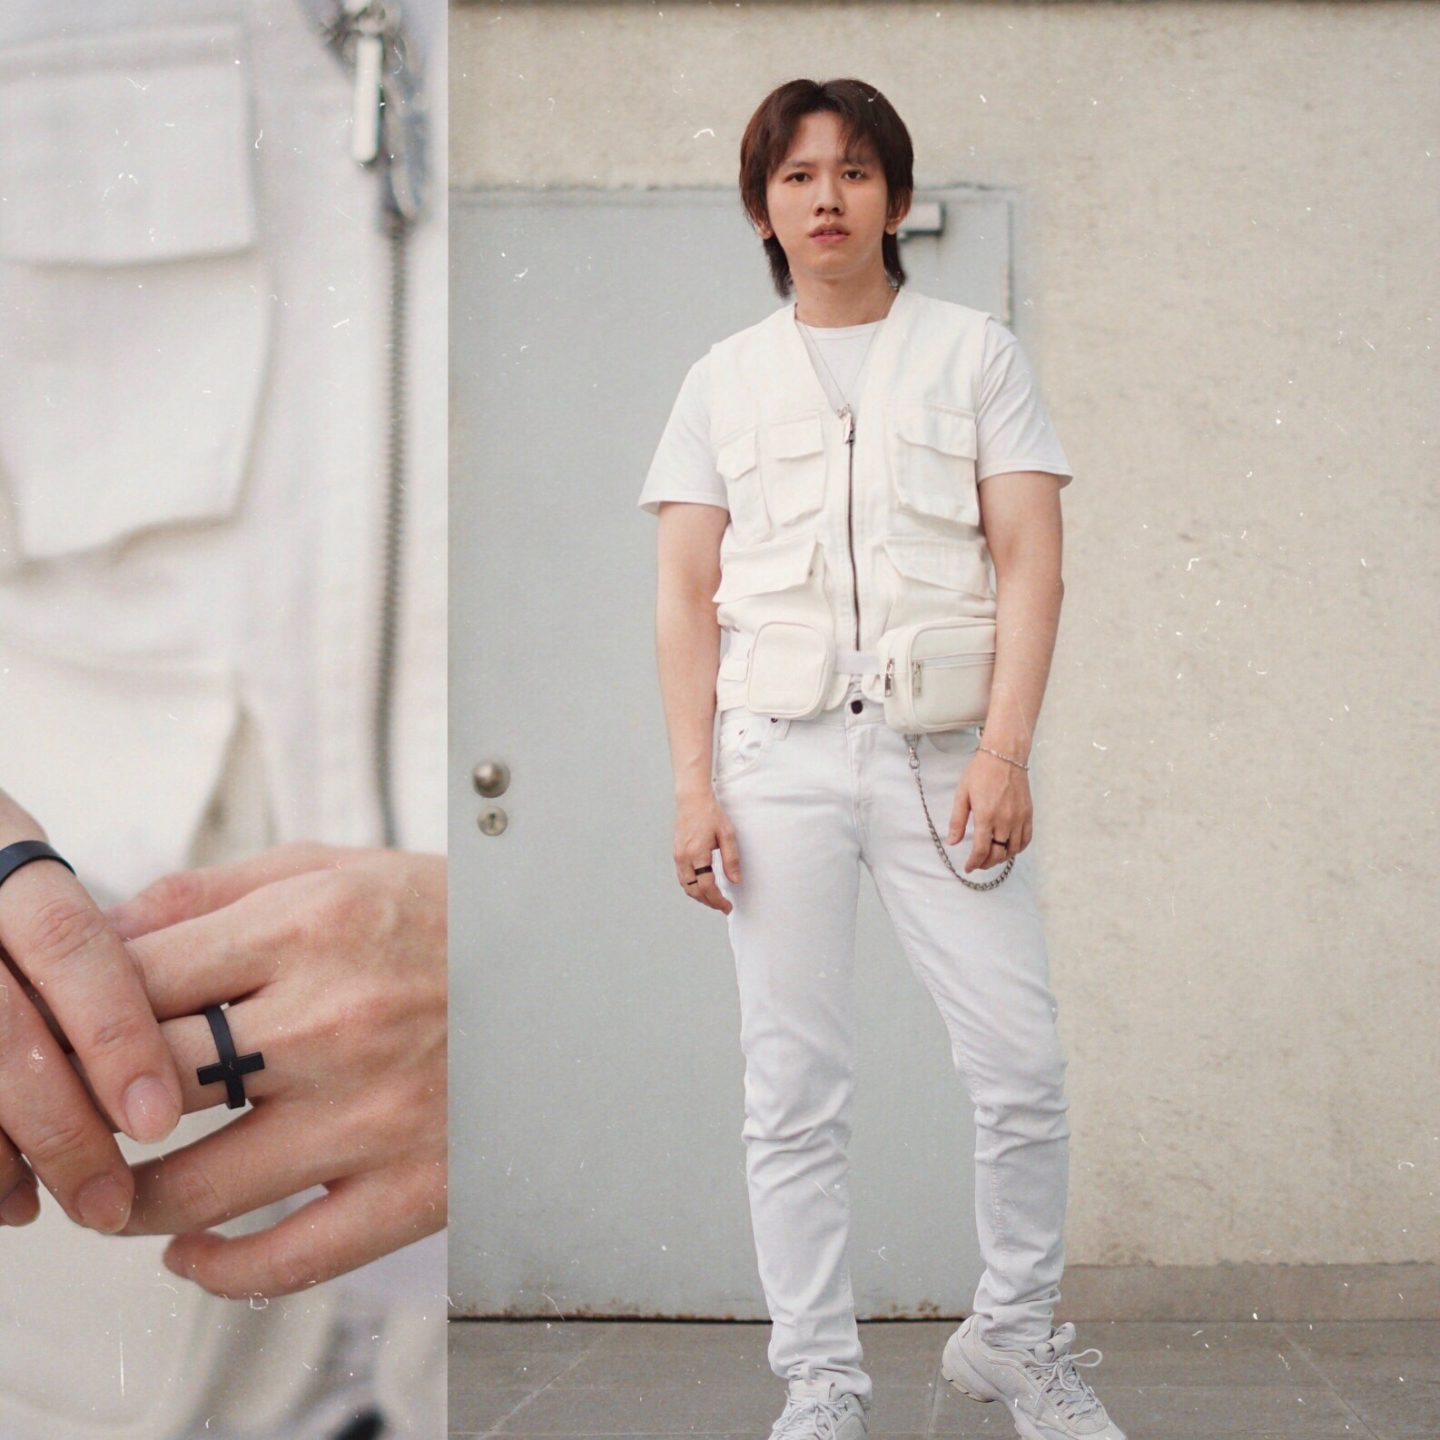 HOW TO STYLE YOUR UTILITY VEST / GILET